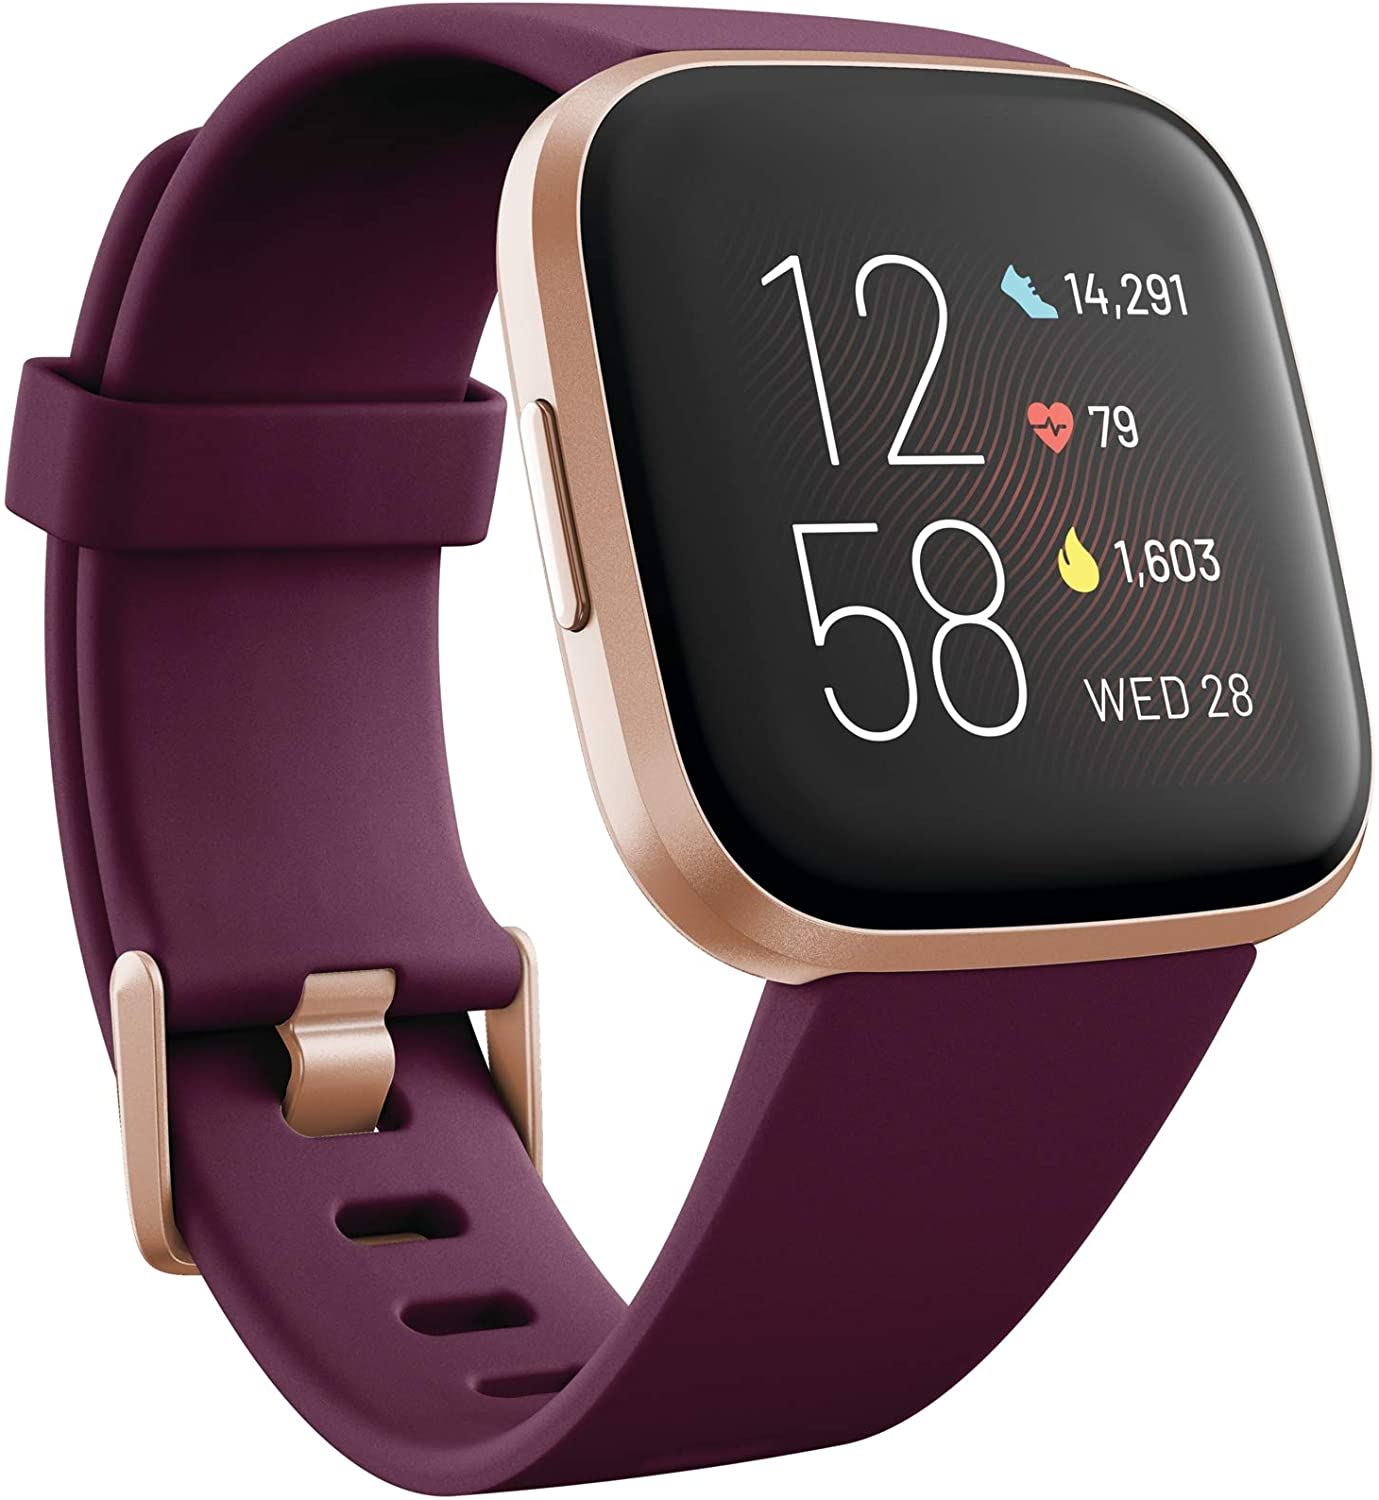 cheapest place to buy a fitbit versa 2